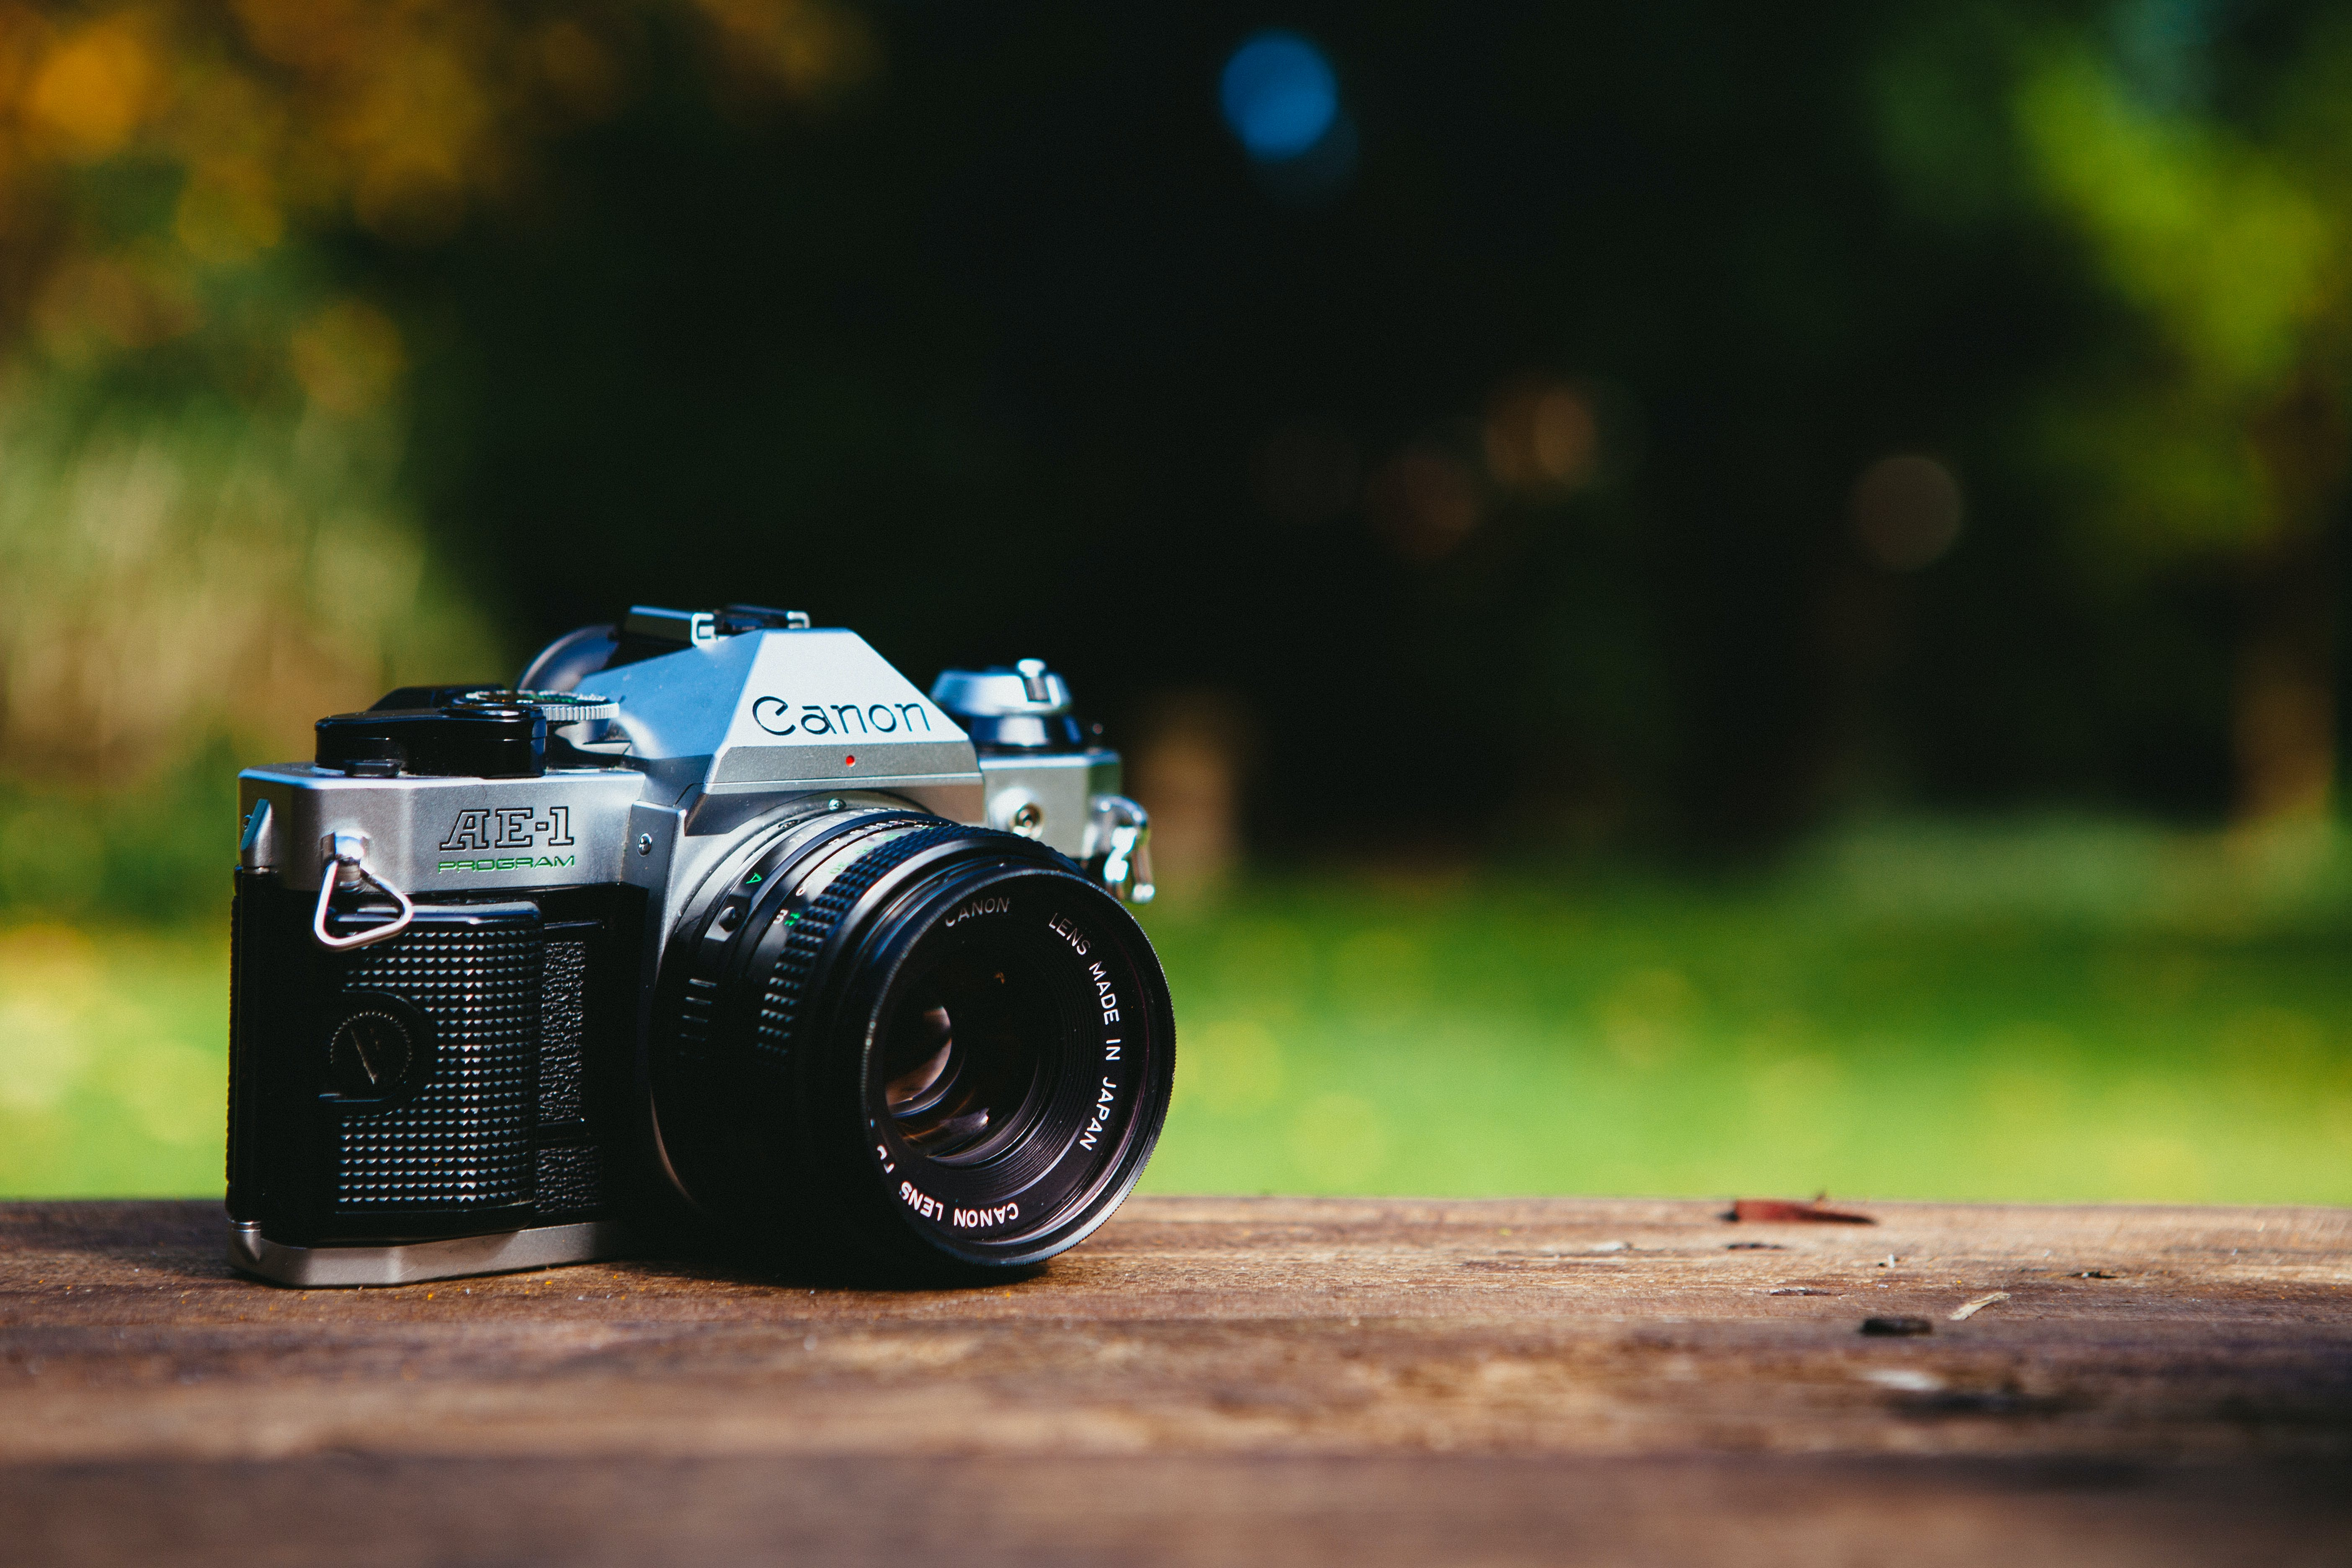 Free stock photo of nature, camera, photography, analog camera